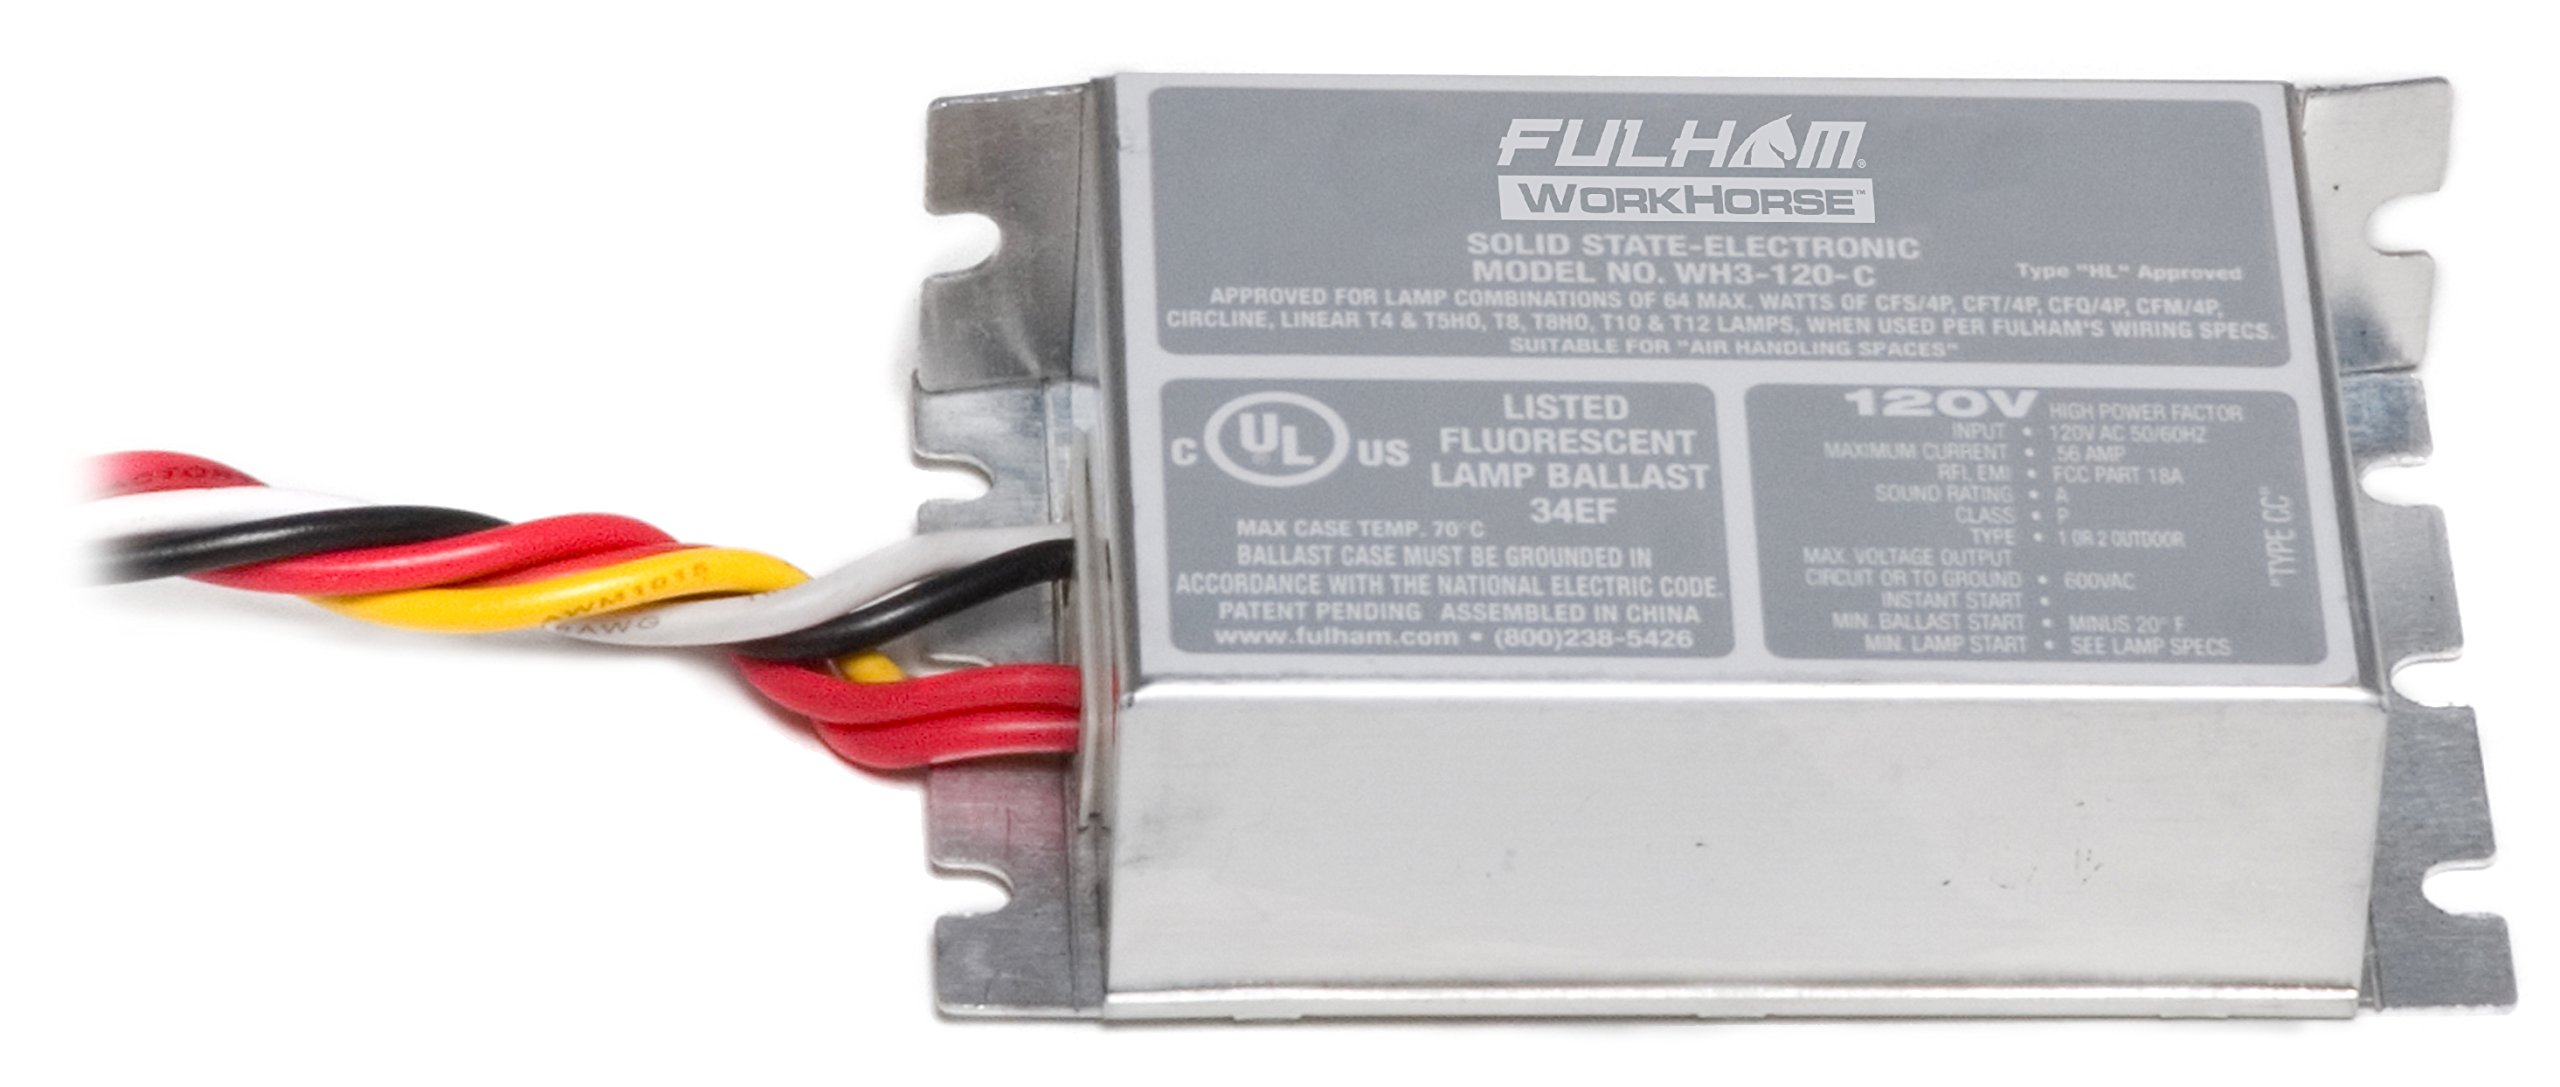 Fulham WorkHorse Adaptable Ballast, WH3-120-C